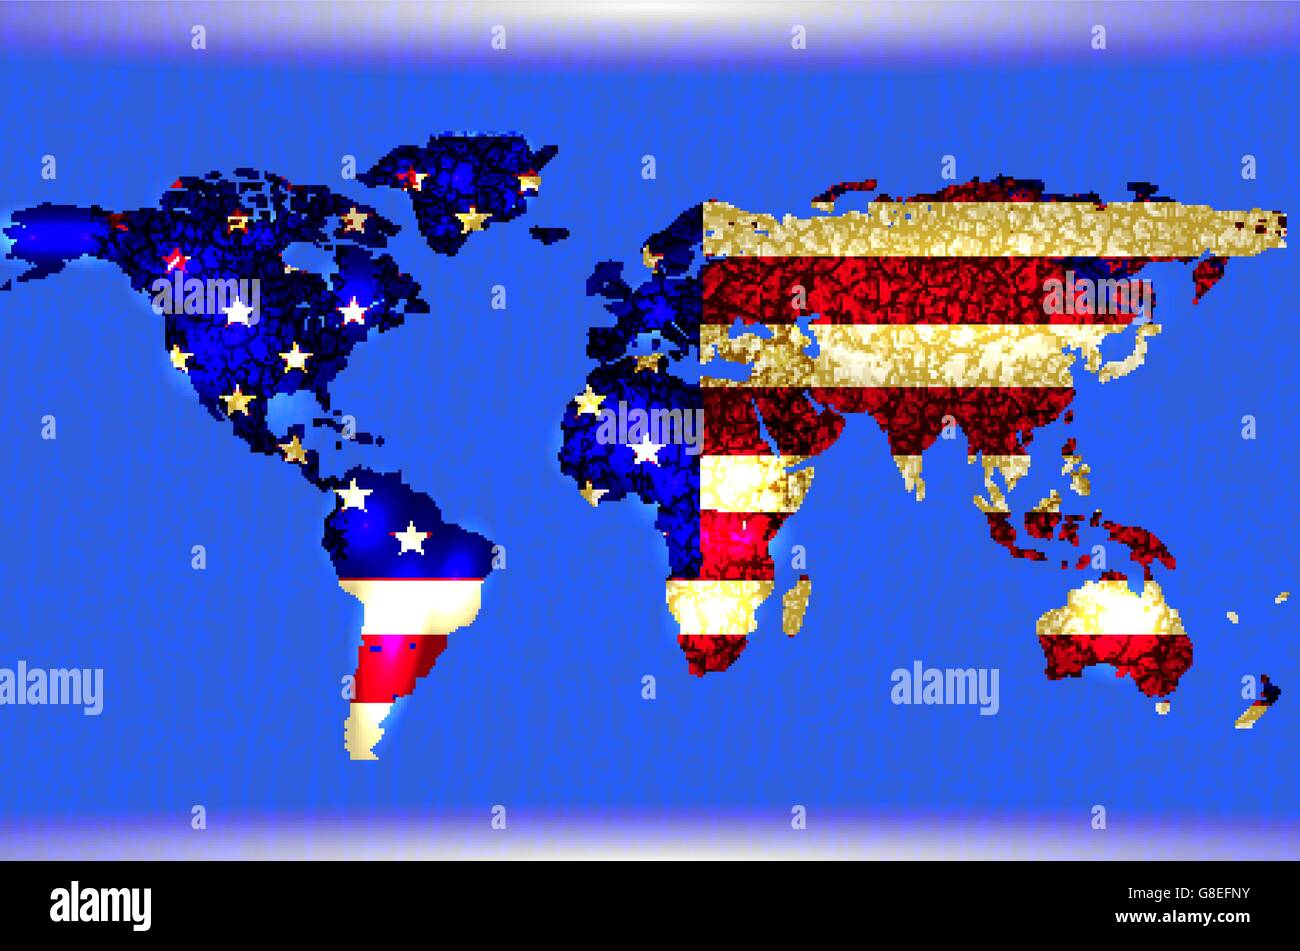 Flag World Map.Blue Illustrated World Map Abstract Texture Lines American Flag